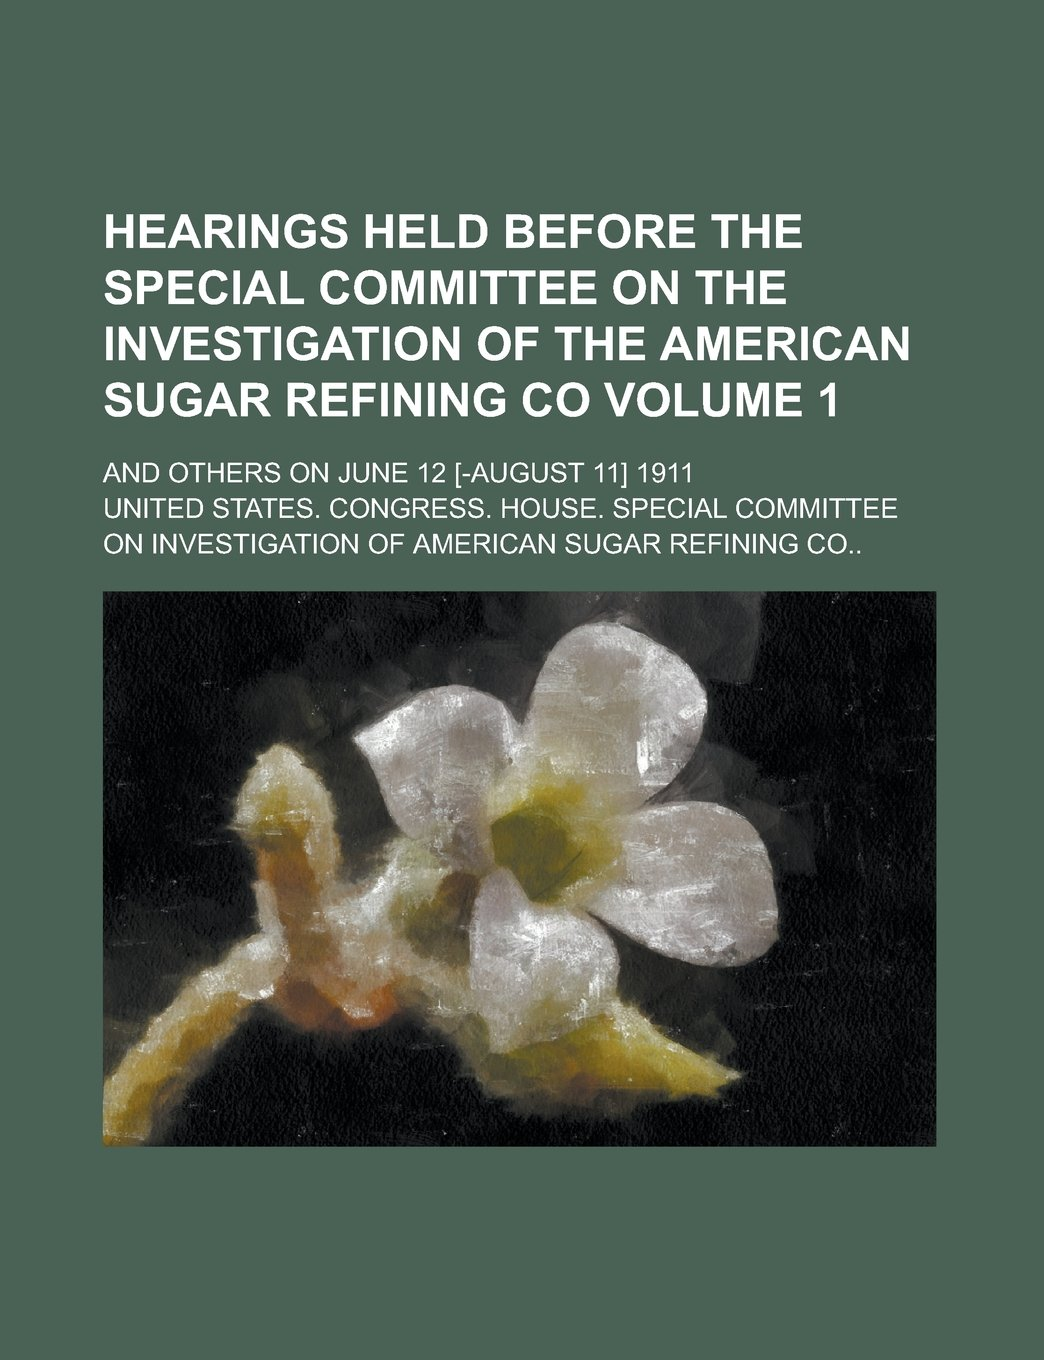 Download Hearings Held Before the Special Committee on the Investigation of the American Sugar Refining Co; And Others on June 12 [-August 11] 1911 Volume 1 pdf